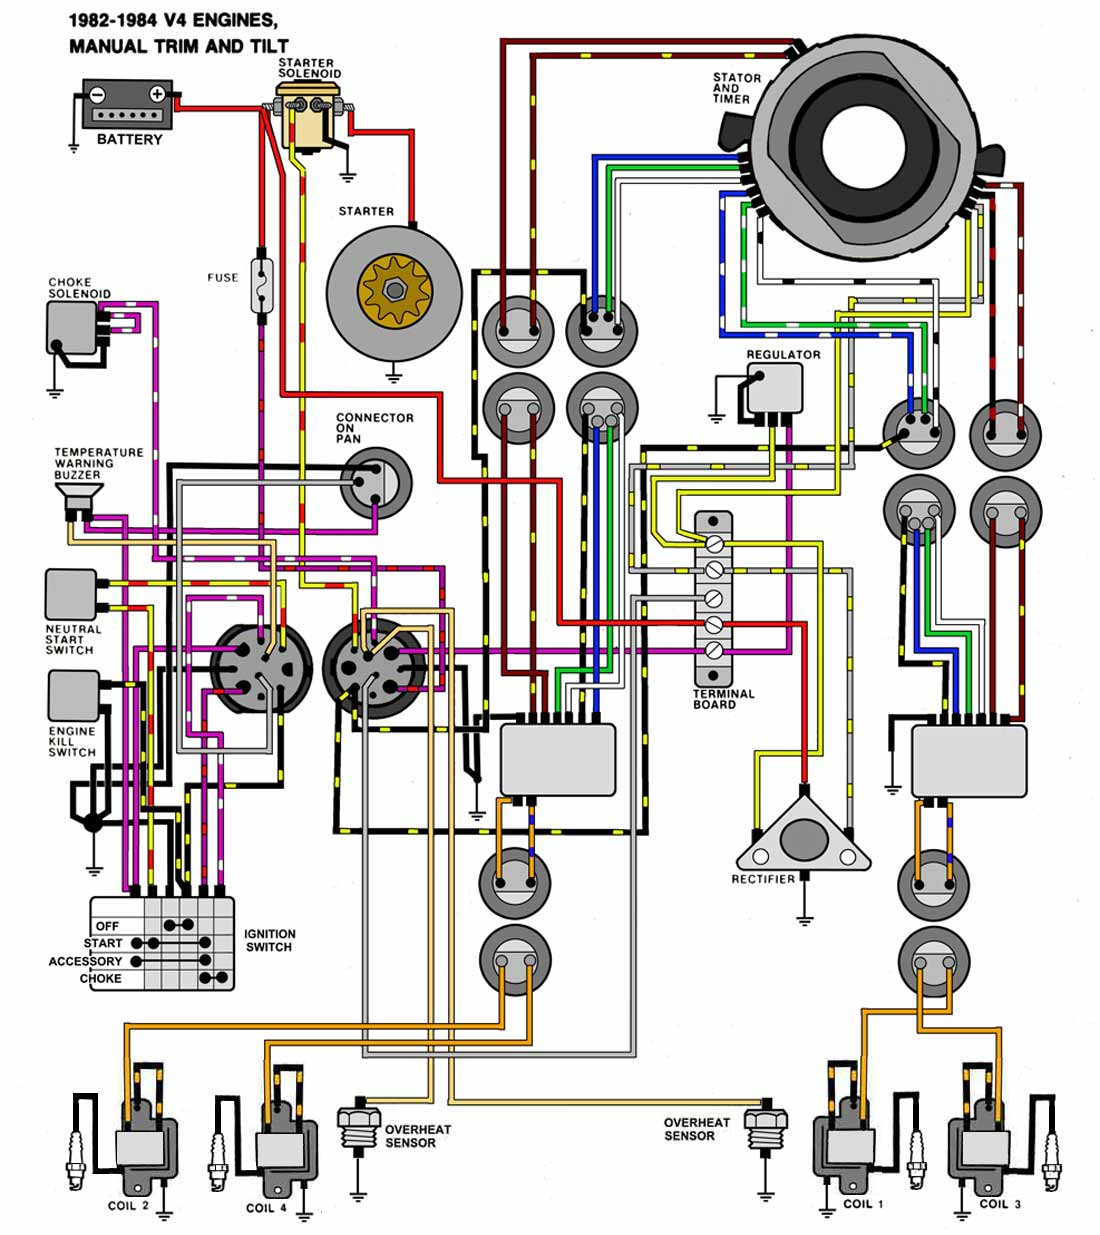 82_84_V4_NOTNT mastertech marine evinrude johnson outboard wiring diagrams evinrude key switch wiring diagram at alyssarenee.co